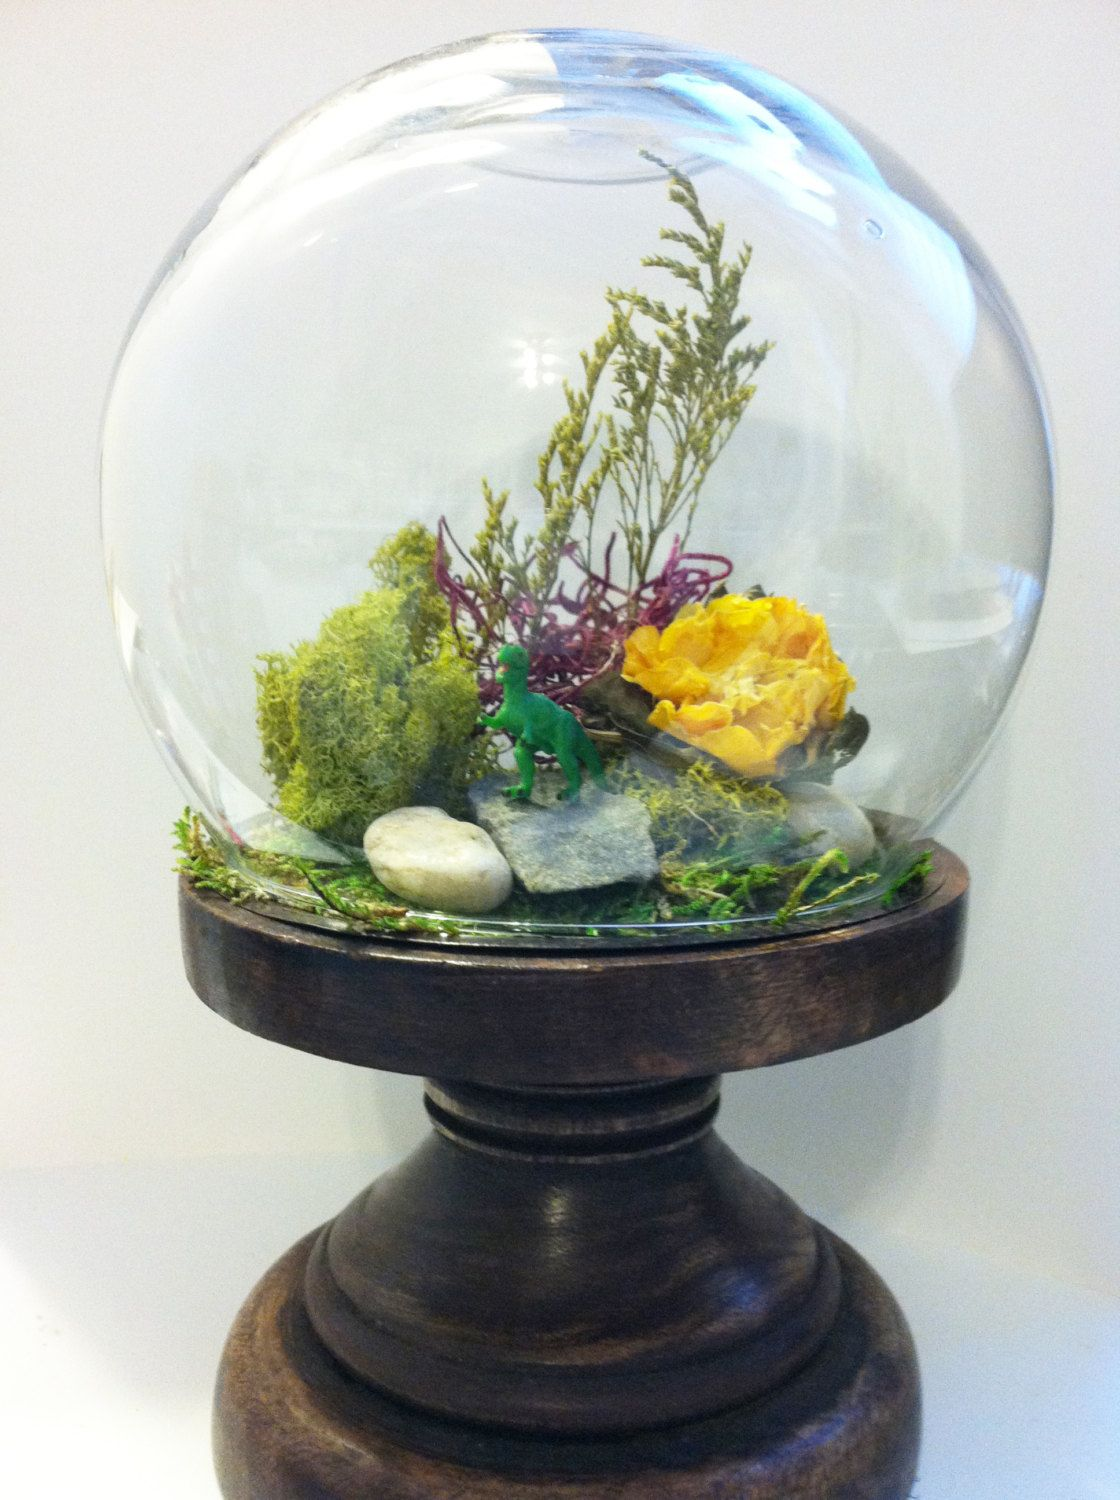 Diy terrarium kit glass dome on wood stand merchandising